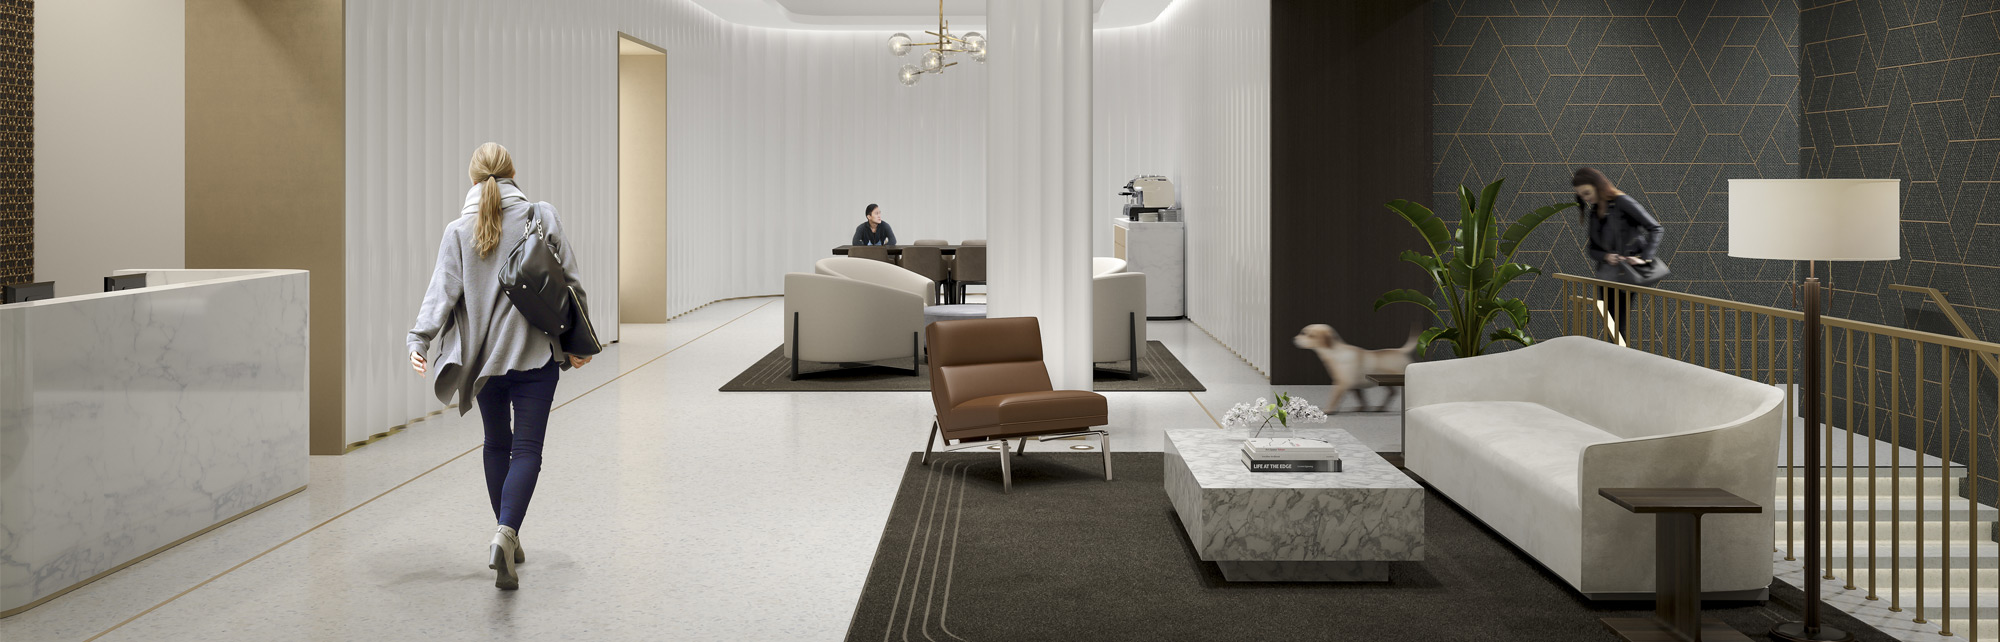 Hollingsworth Luxury Apartments Offer Multifunctional Living Spaces